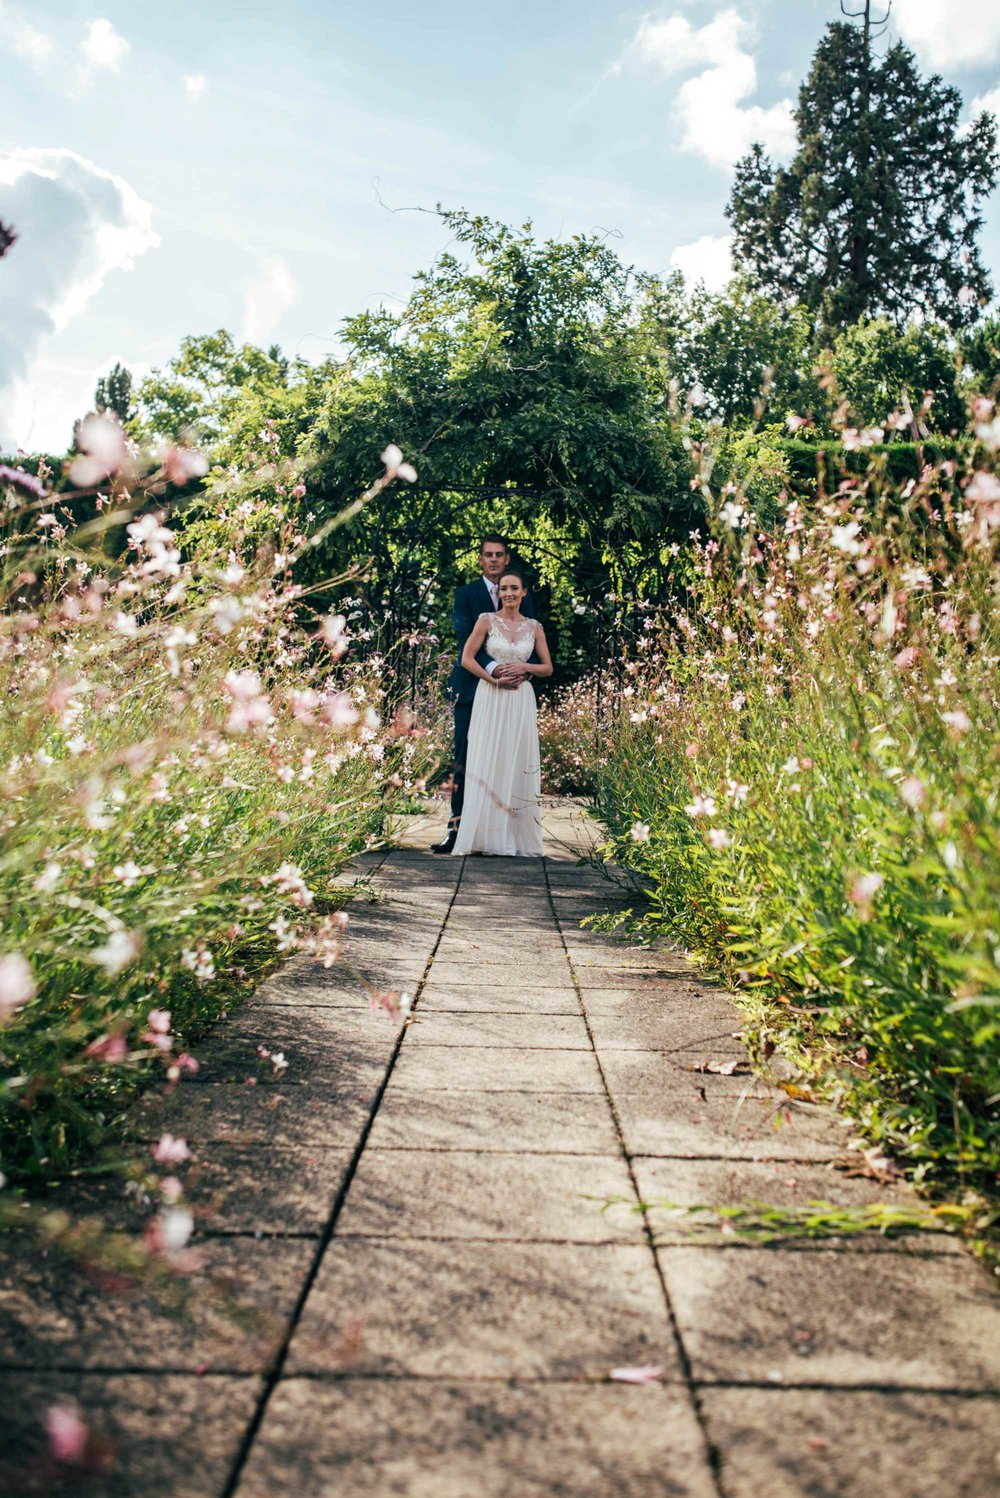 Modern Rustic, Romantic Autumn Wedding at Gaynes Park, Essex. Bride wears Maggie Sottero. Essex Documentary Wedding Photographer.